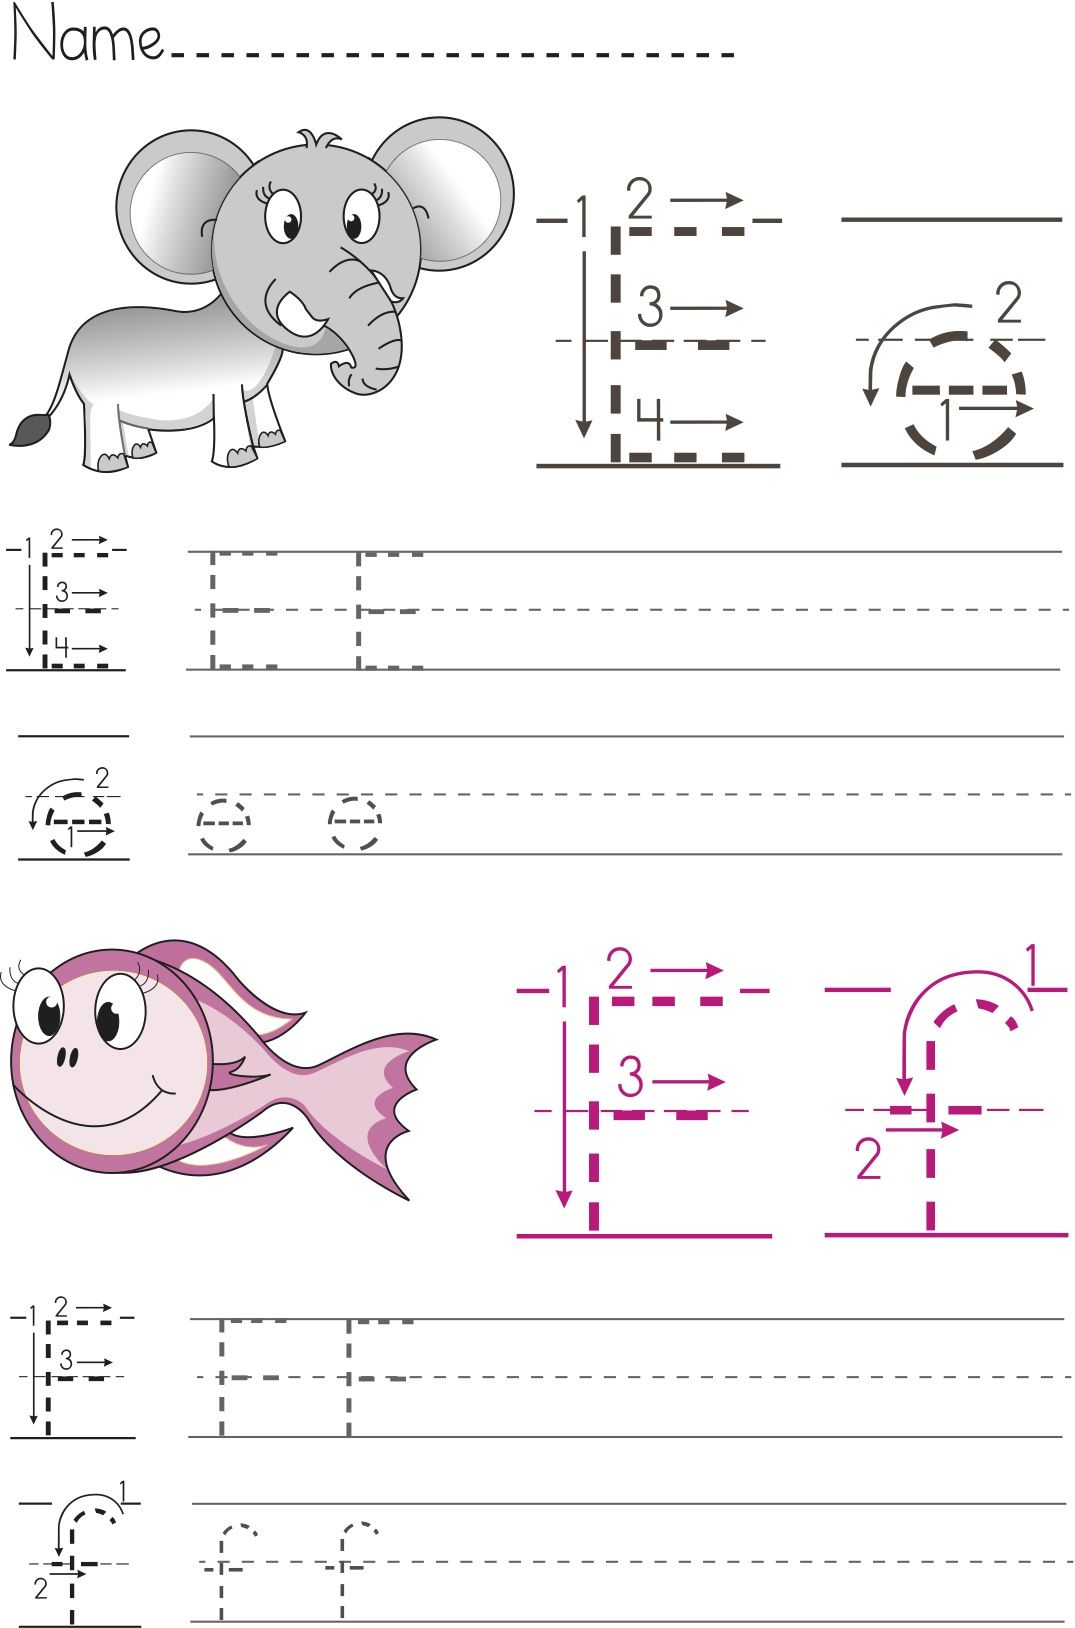 Free Writing Worksheets for Preschool and Kindergarten abc – Kindergarten Name Writing Worksheets